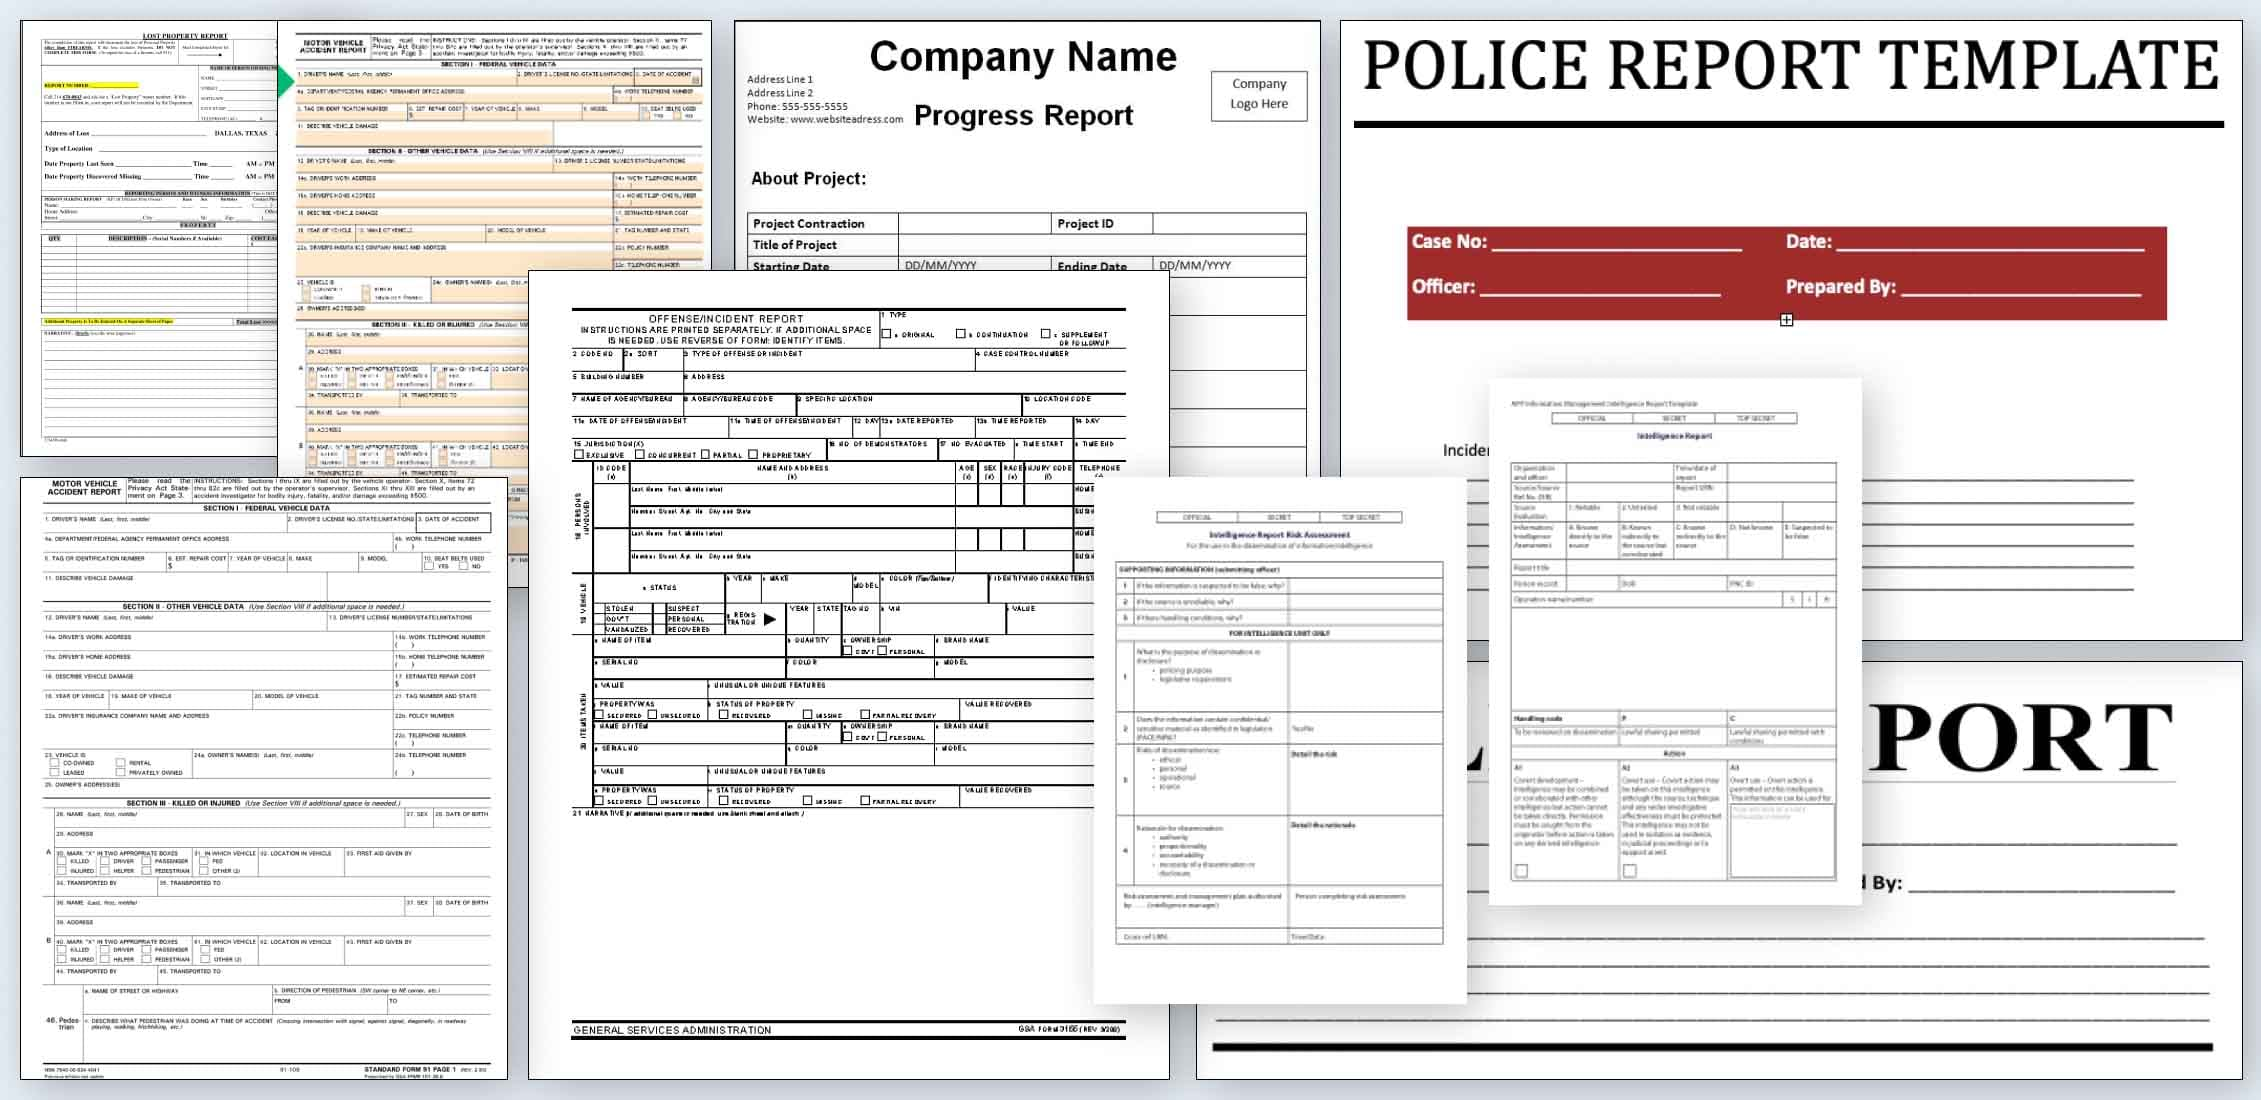 Best Police Report Templates Example.